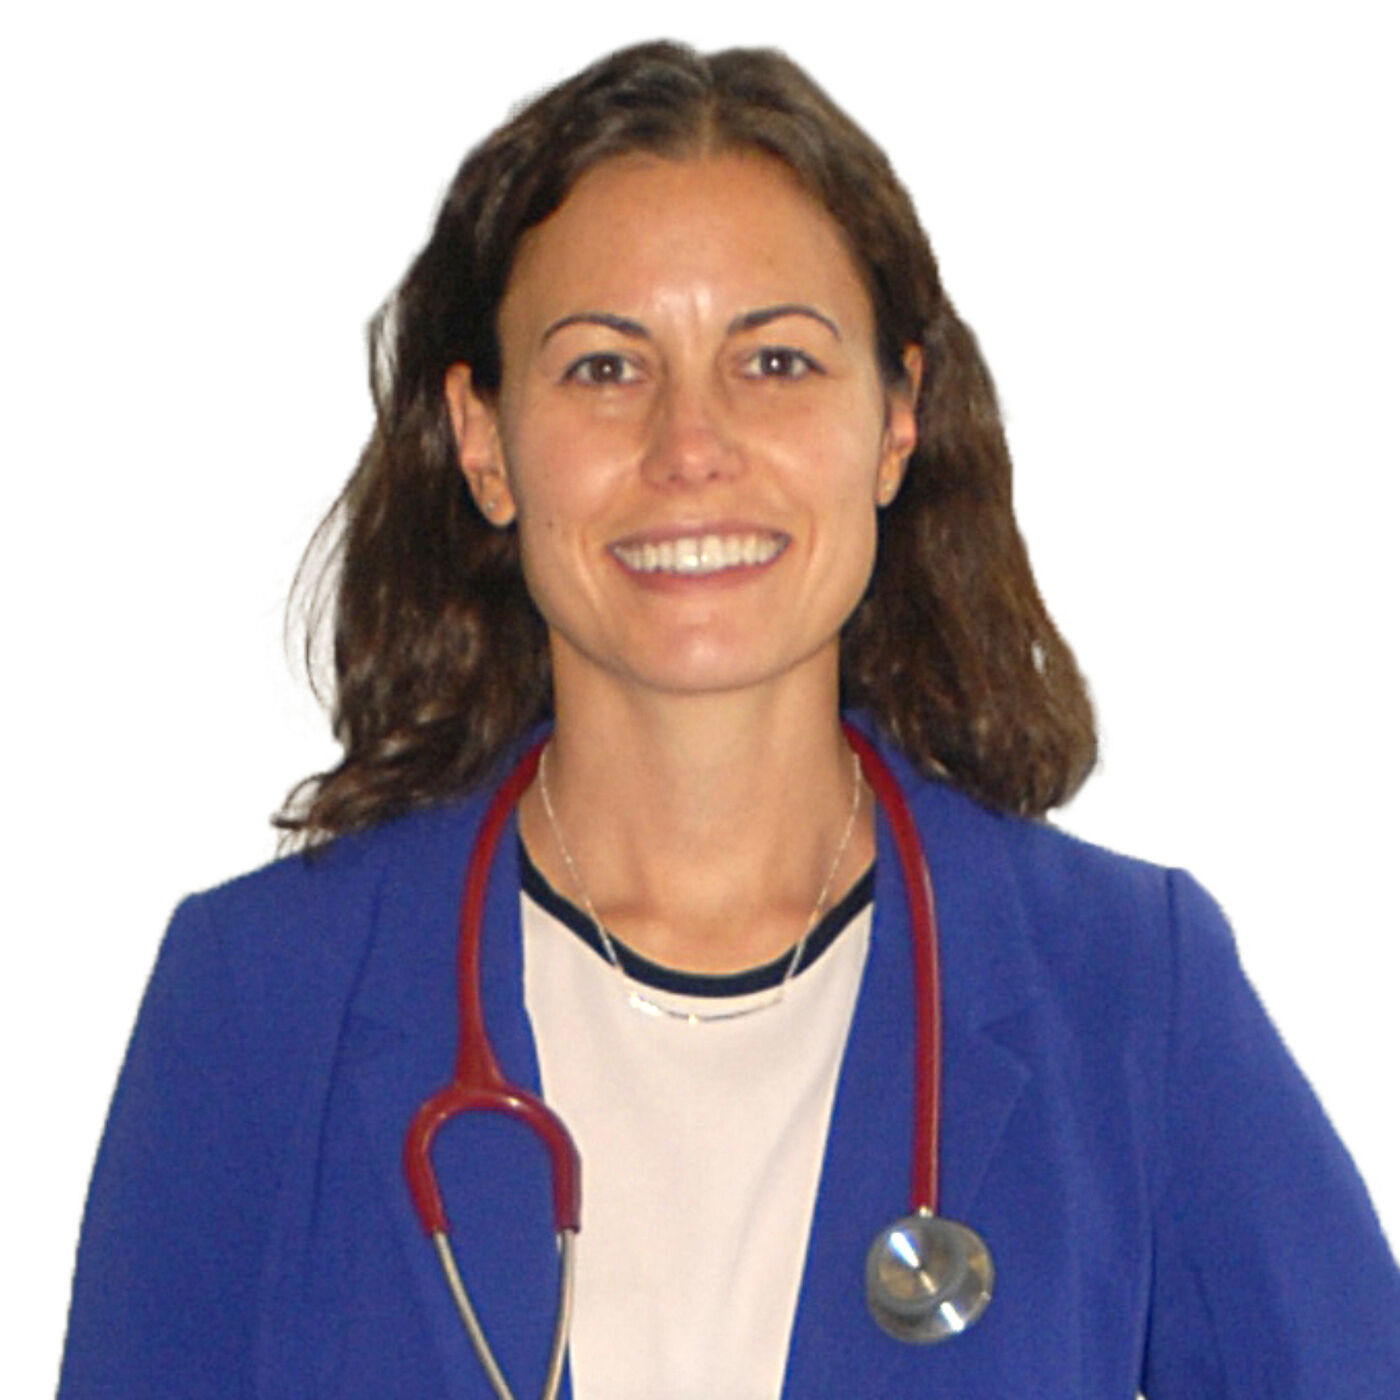 #12 - Hybrid Physicians, Architecture, and Healthcare Design with Dr. Diana Anderson